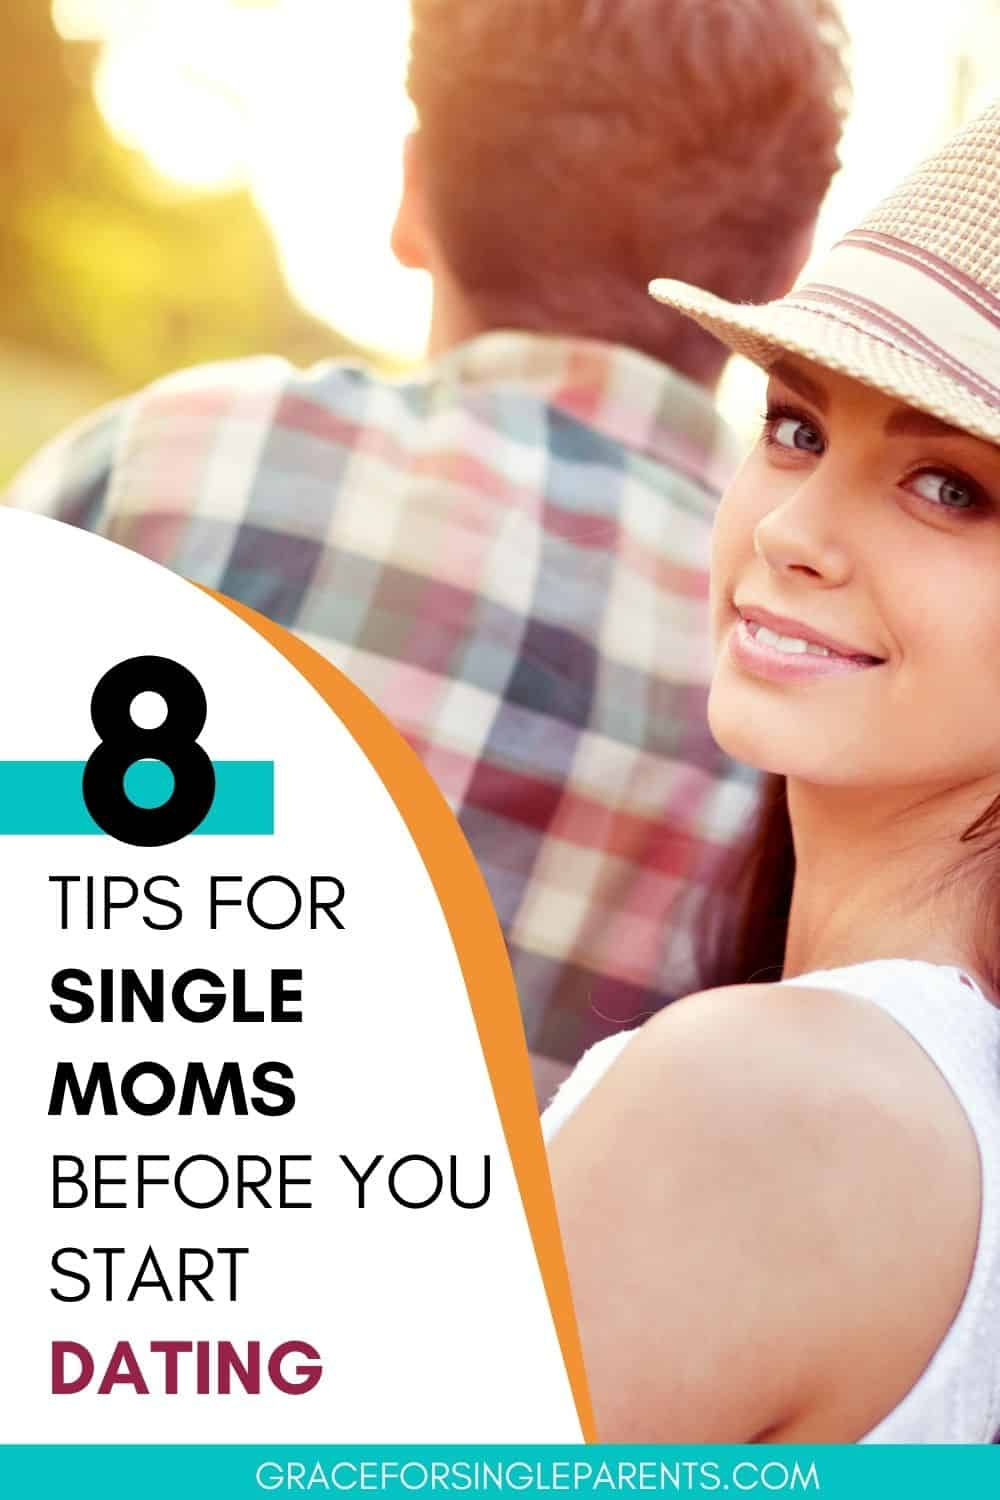 Dating as a Single Mom: 8 Things You Need to Know